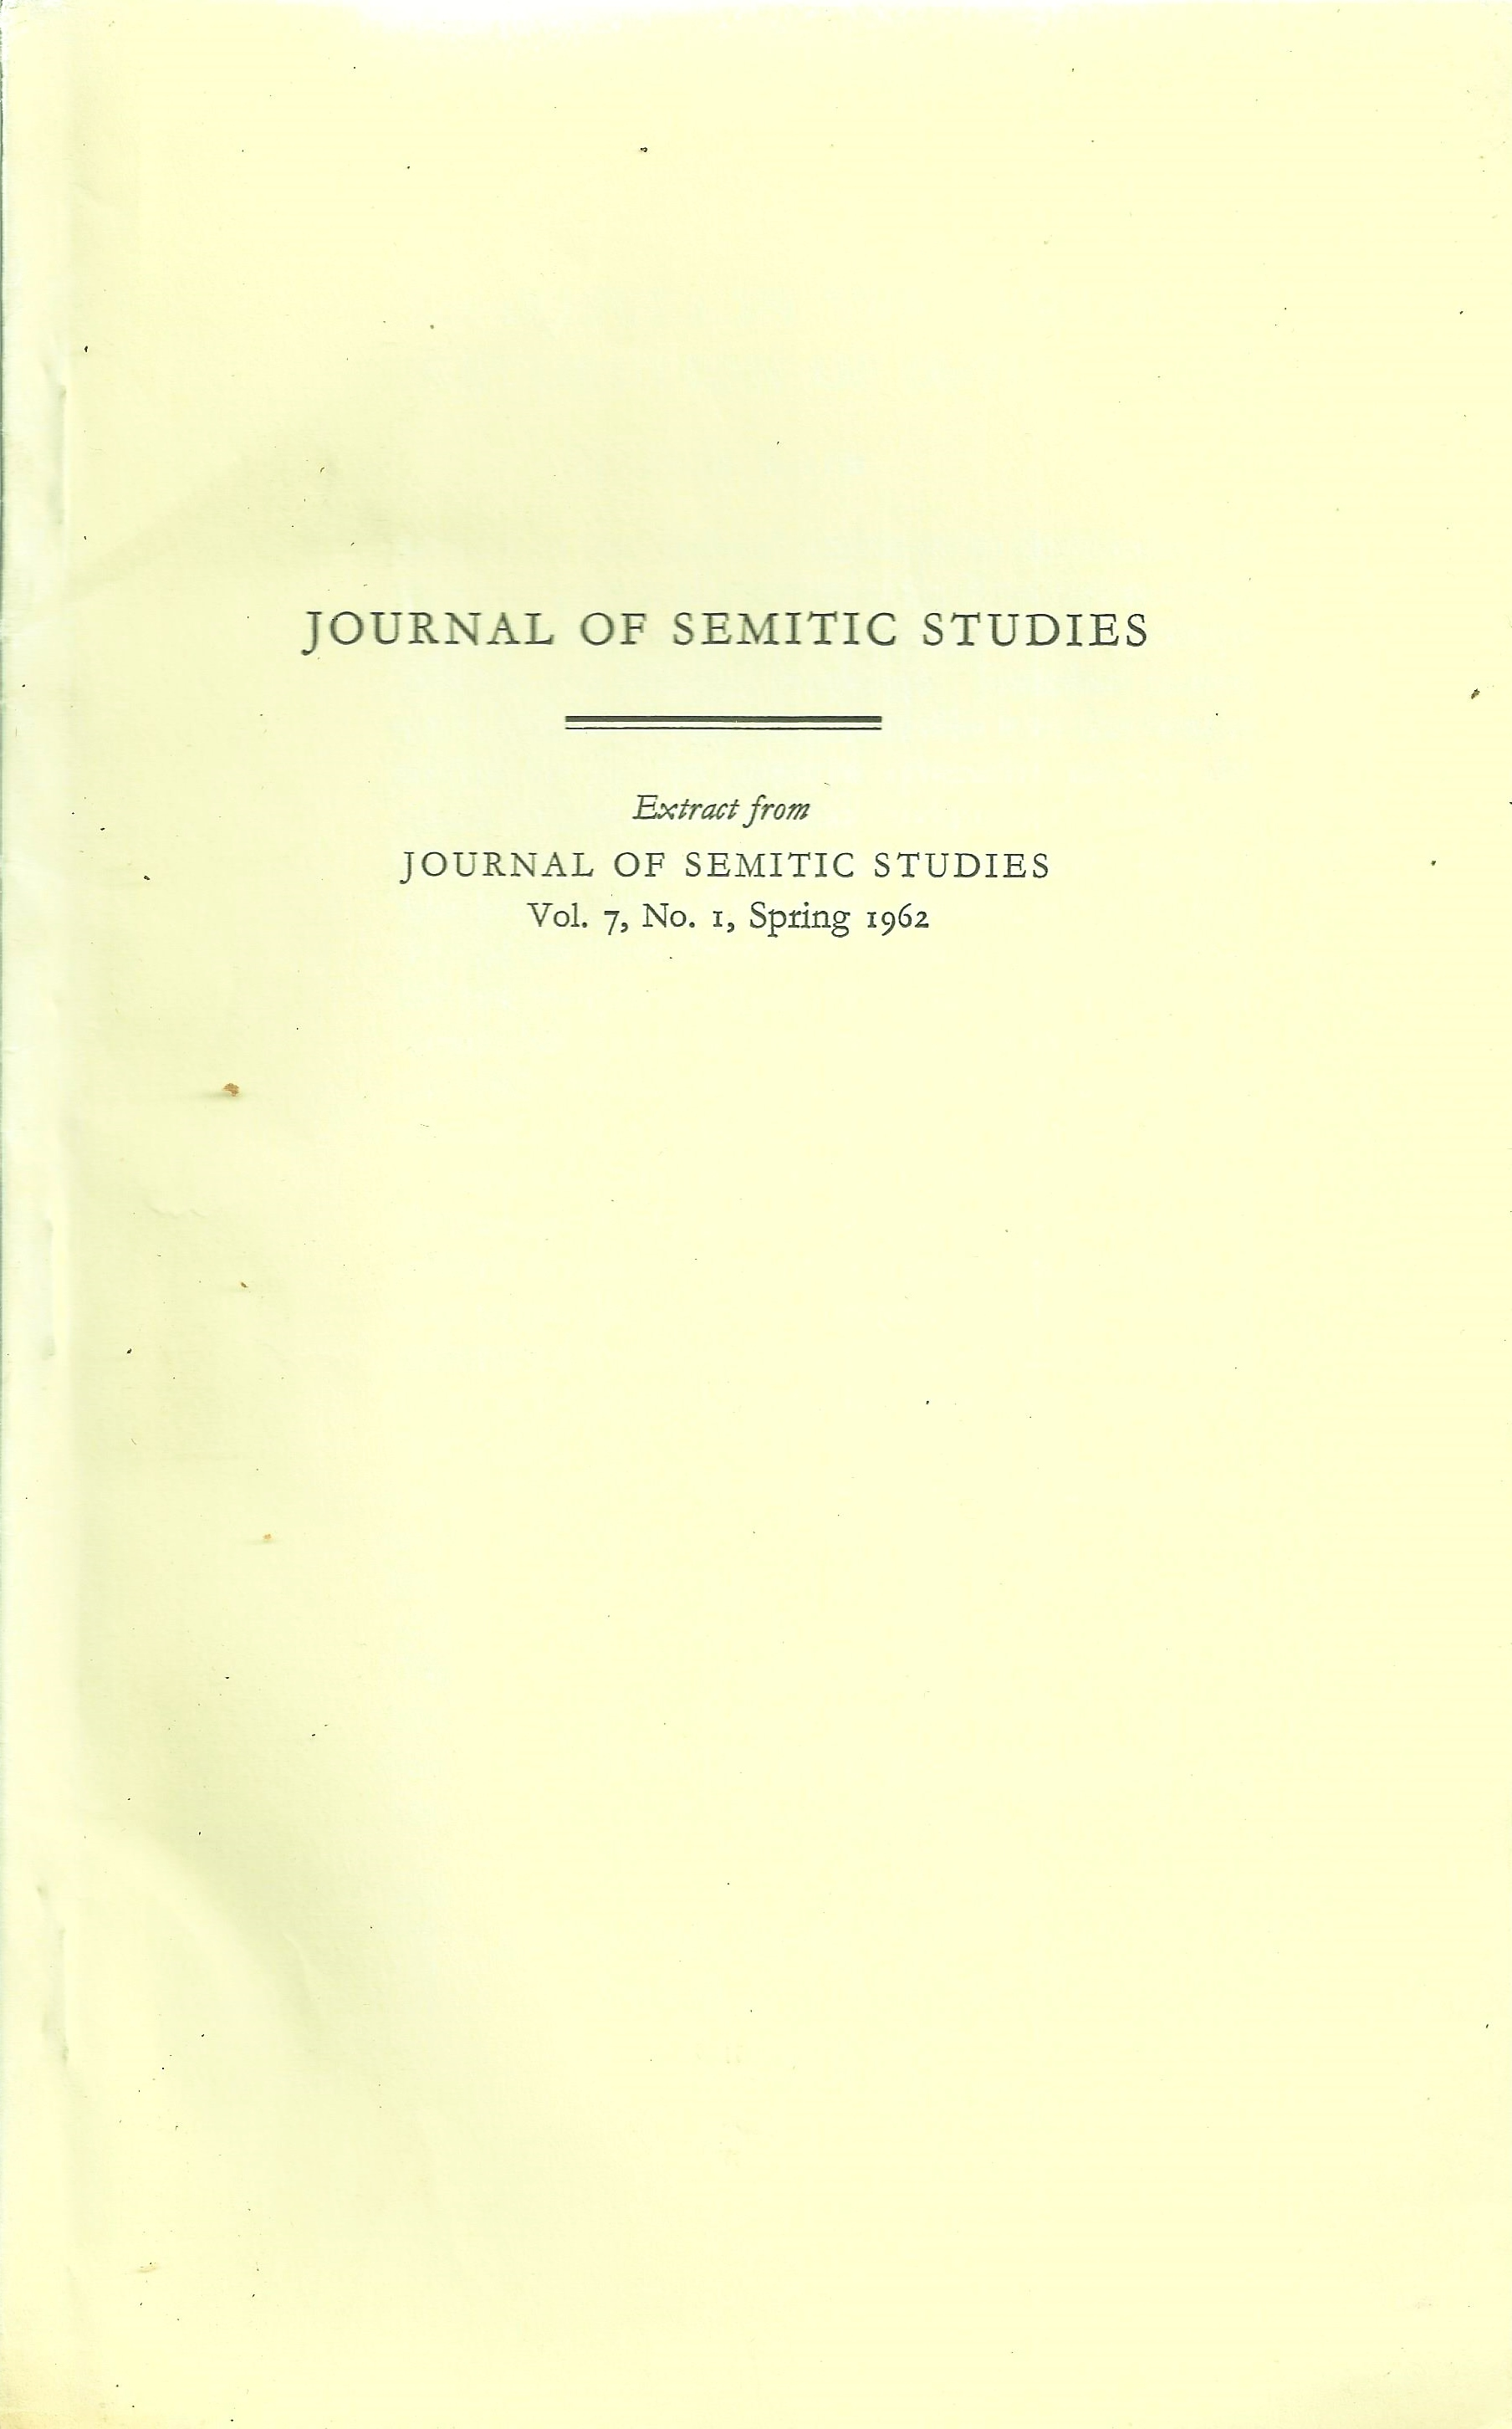 Dan wyman books llc the pharisees in the jewish revolution of 66 73 journal of semitic studies 1962 1st edition offprint original paper wrappers 8vo p 63 80 25cm solutioingenieria Image collections